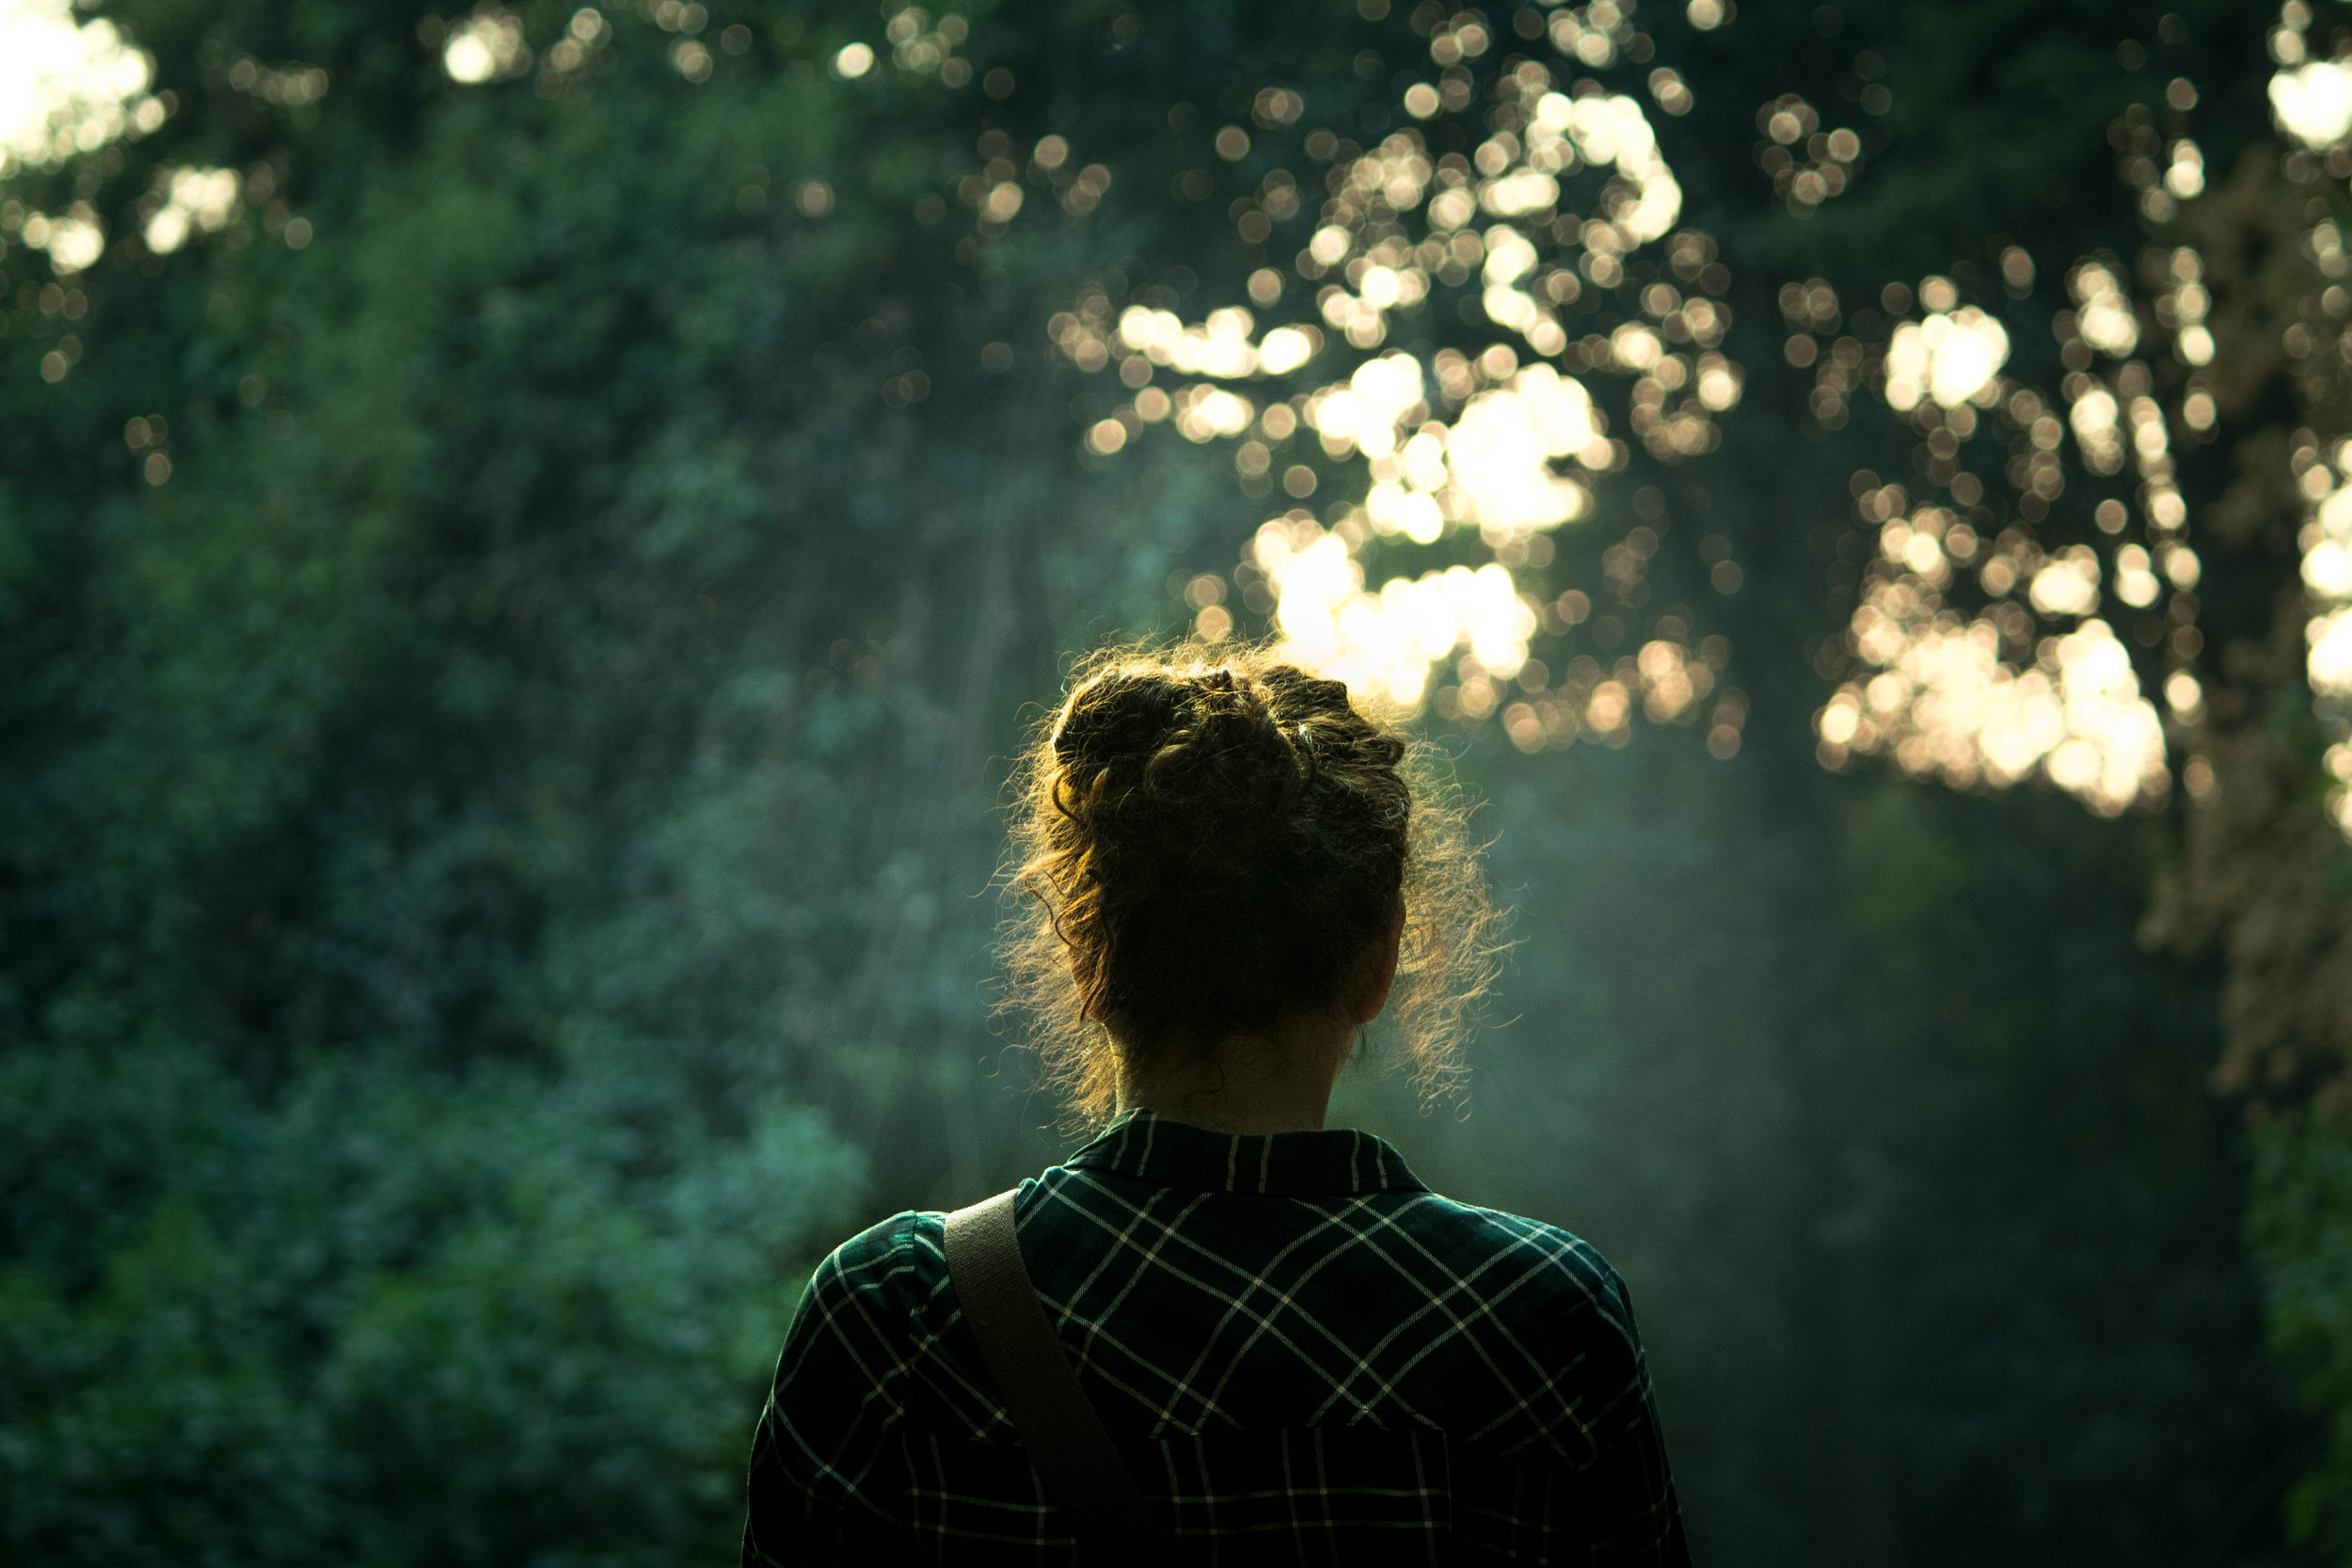 View of a woman's back as she stands in a green forest with light shining through the trees.